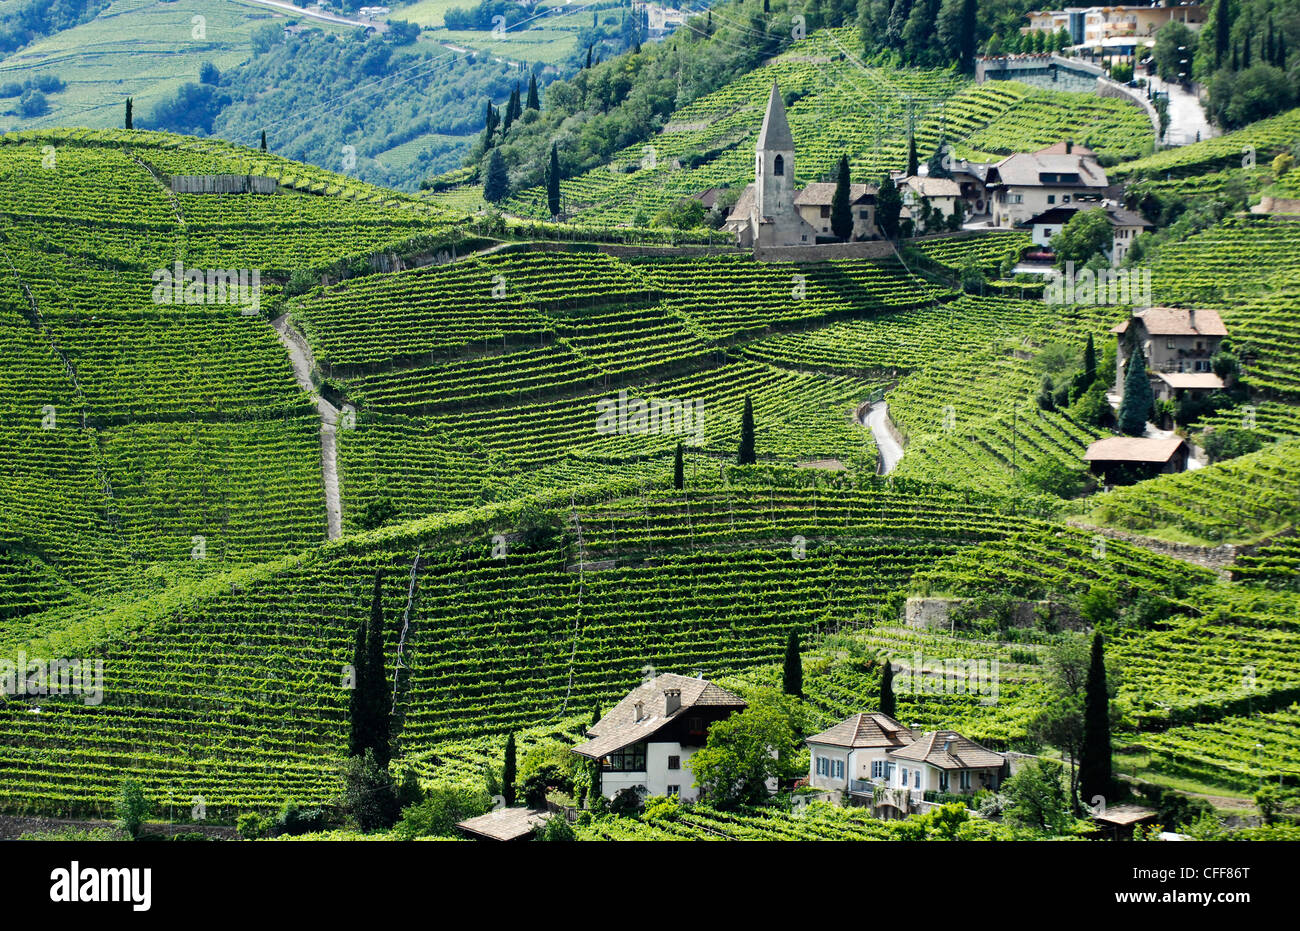 Vineyard and houses in the sunlight, Bolzano Rentsch, Dolomites, South Tyrol, Alto Adige, Italy, Europe - Stock Image